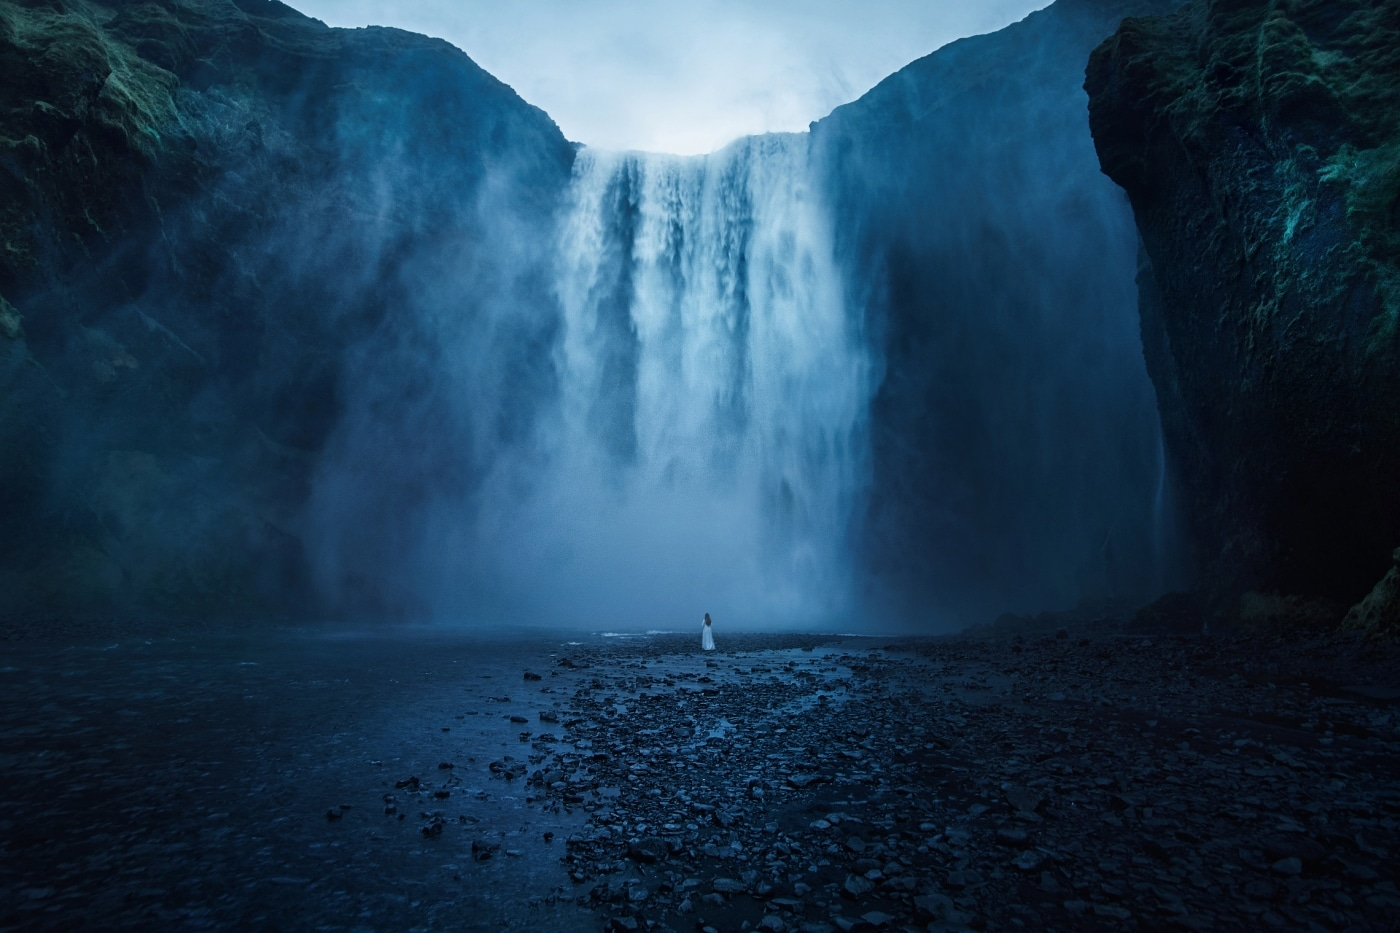 Follow Me Away Captures the Stunning Sights of Iceland